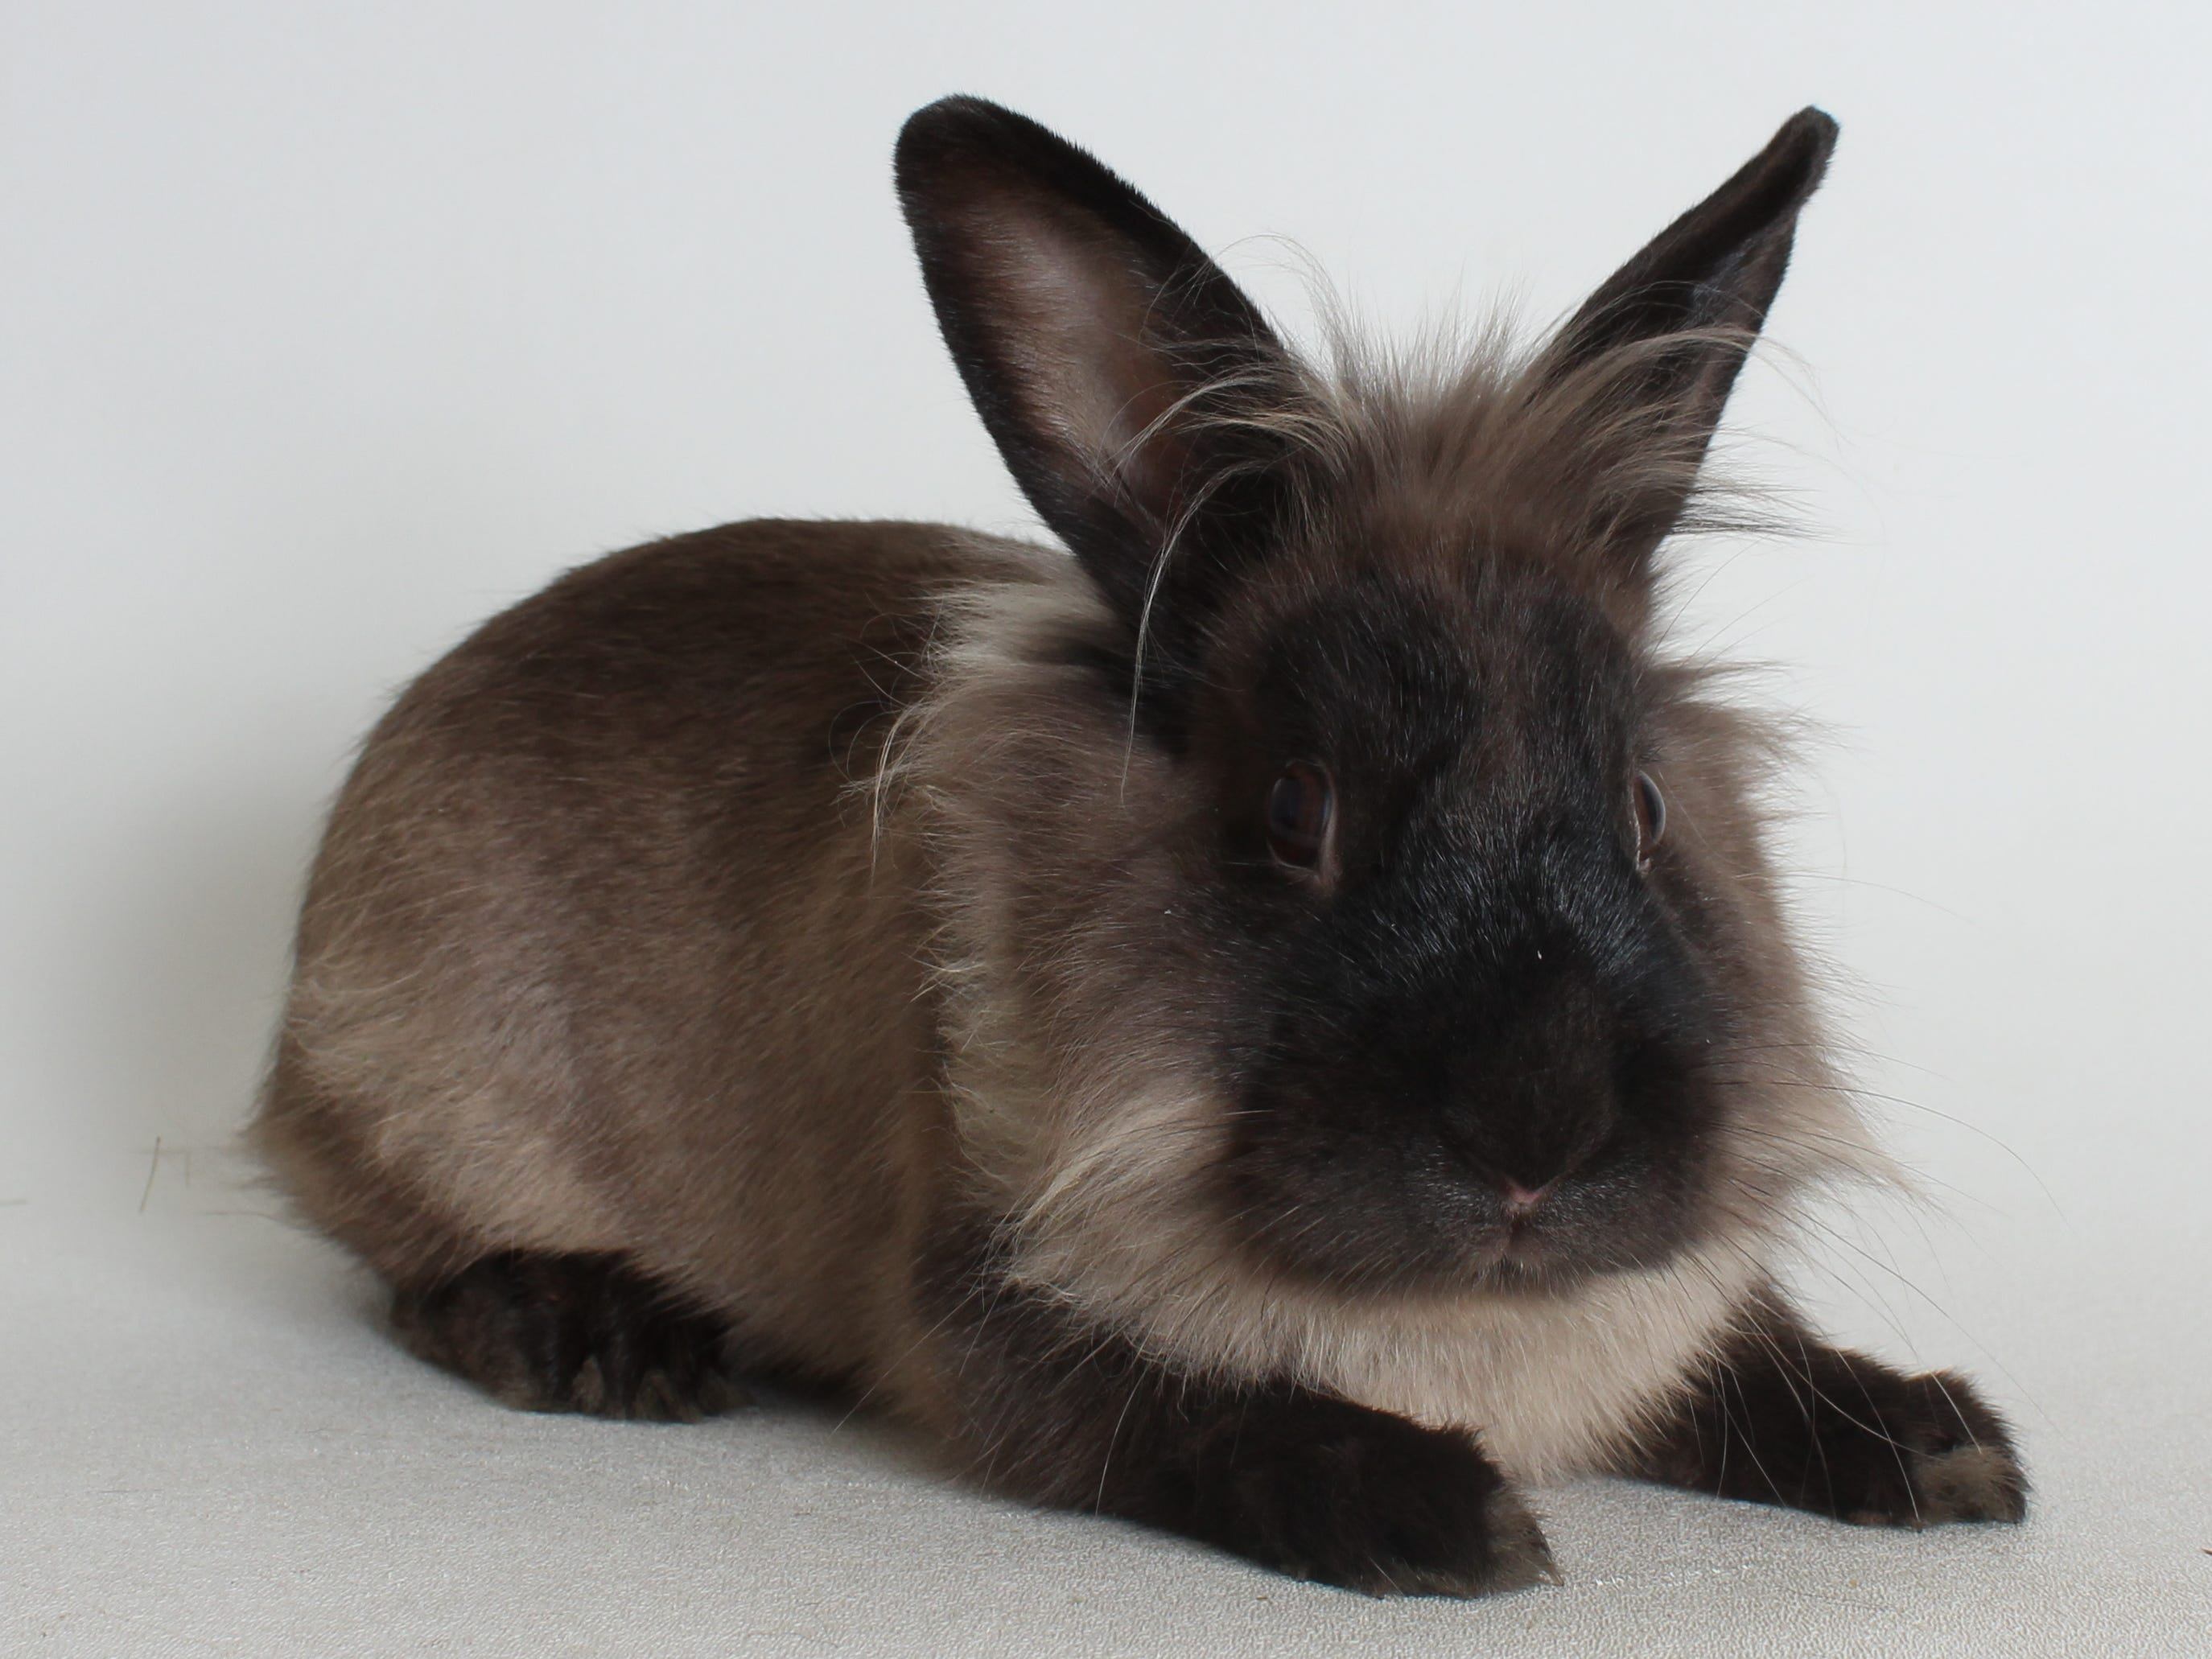 Princess Bubblegum is a one-year-old, spayed, female, lionhead rabbit. She's very sweet. Rabbits need hay, fresh greens, pellets and fresh water to keep them healthy and happy. She also needs space to roam. All feline and canine adoptions include spaying or neutering, vaccinations and a microchip. Visit Haven Humane Society, 7449 Eastside Road, Redding. Call 241-1653. Go to www.havenhumane.net.